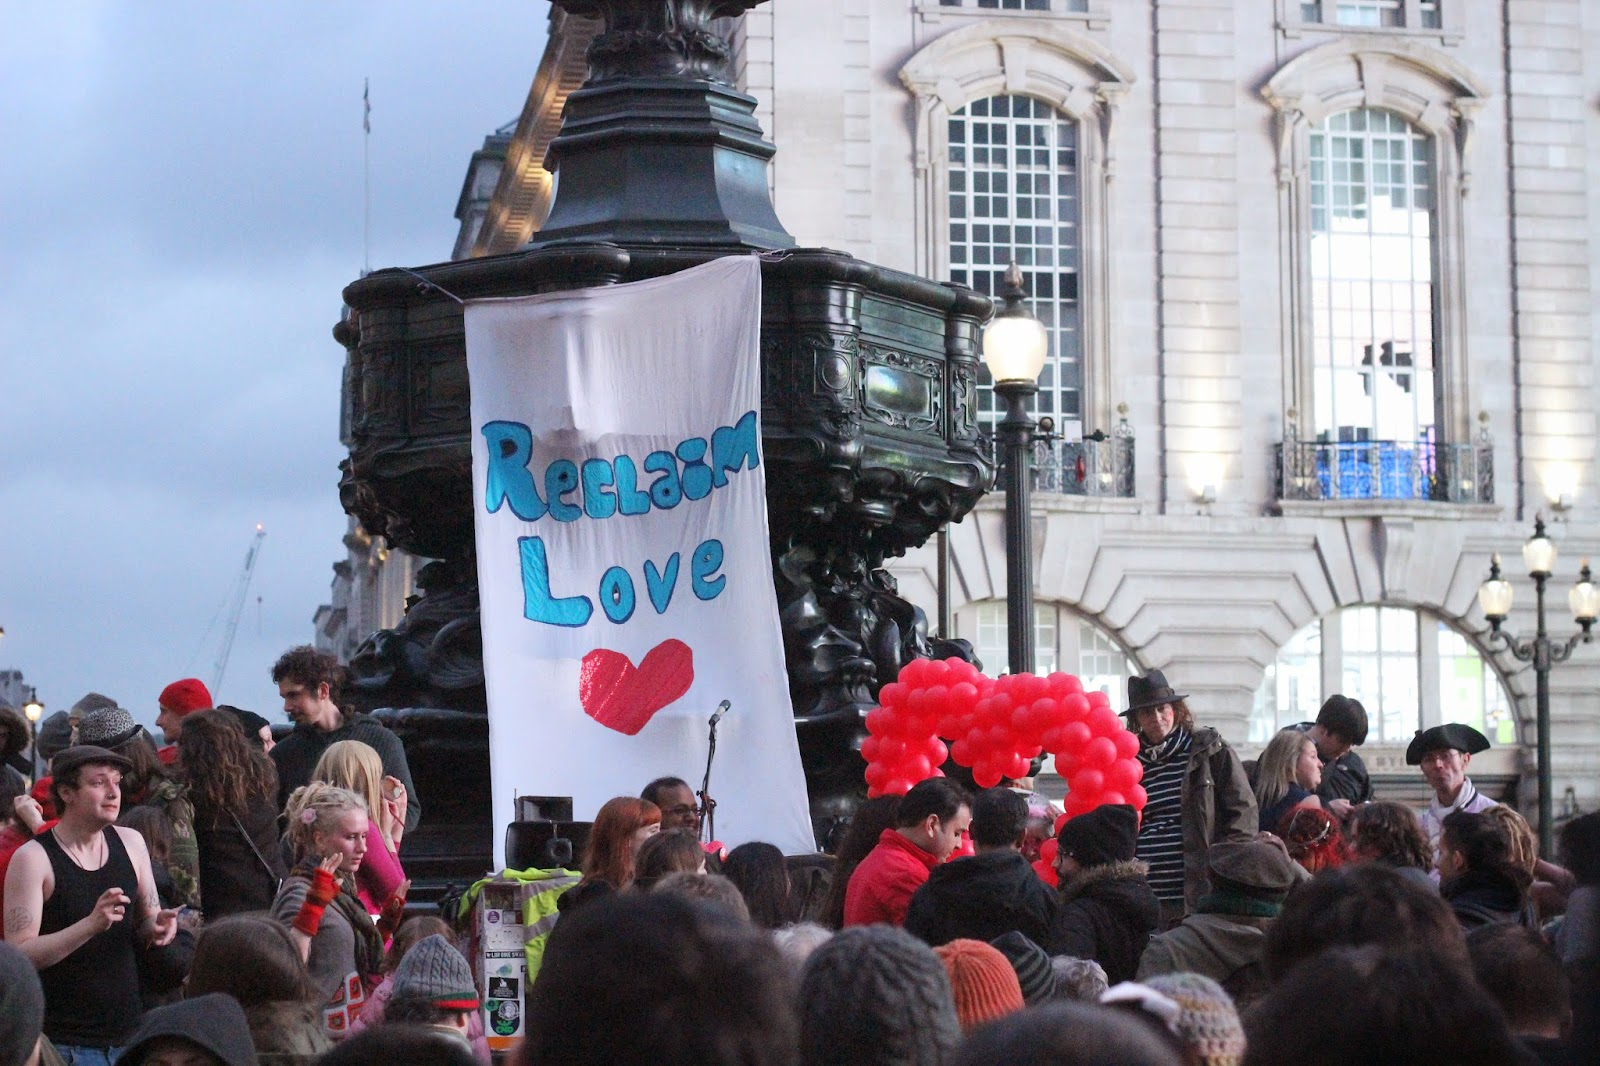 Reclaim Love in Picadilly Circus - Photograph by Art Style Love